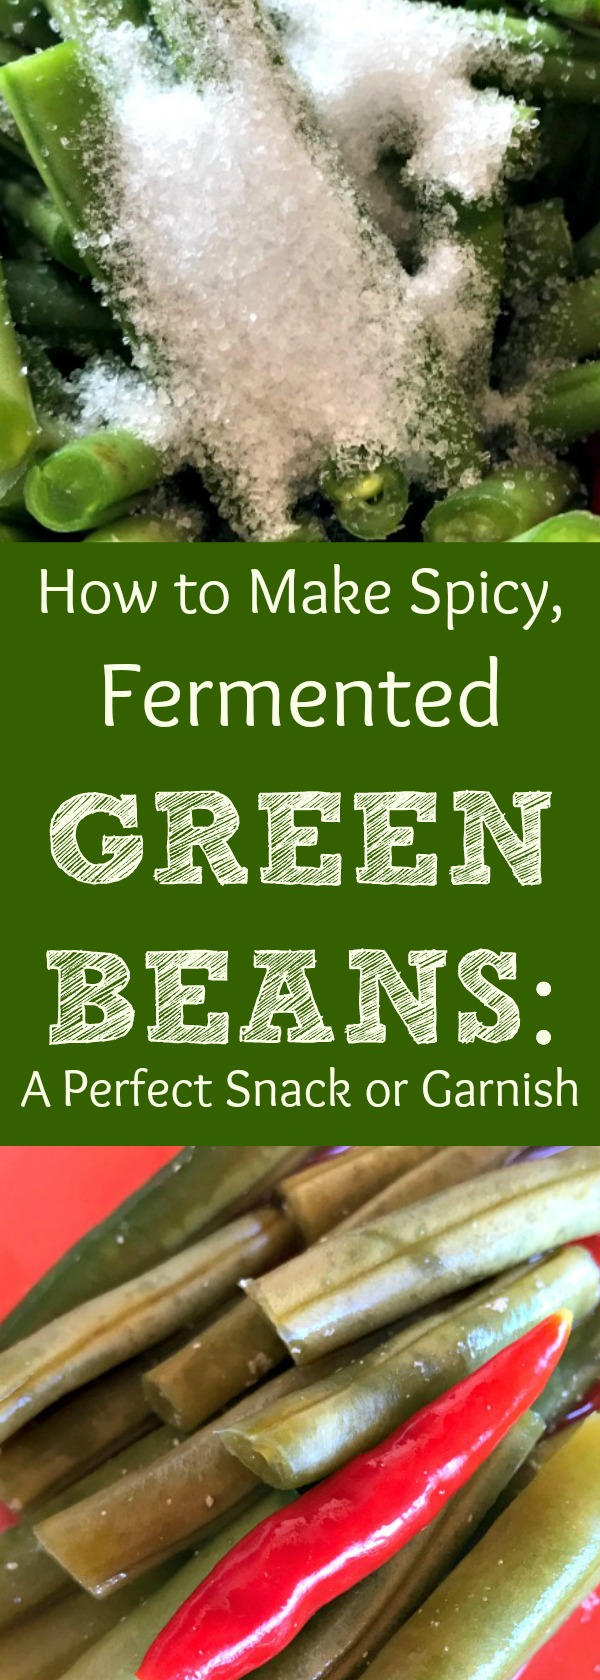 Have too many green beans to use up? Need to use them fast? Don't feel like canning? Here's my recipe for Spicy Fermented Green Beans! Fermentation is a great option as a food preservation method. Here's how to ferment green beans for a delicious snack or addition to your cooking!